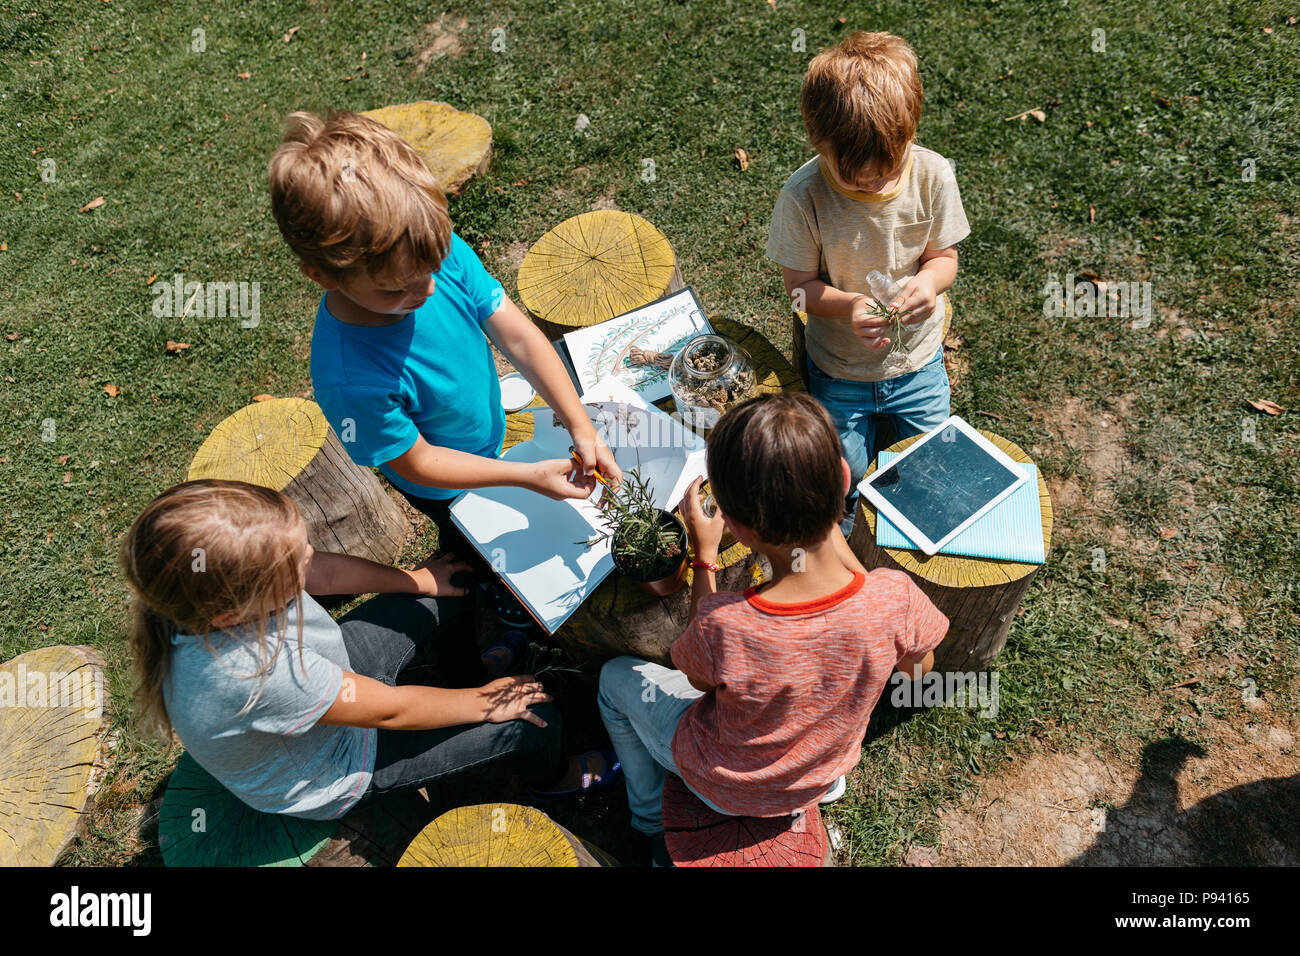 Group of classmates learning together at a natural science lesson outside in a garden. Top view of children cooperating on a school project. - Stock Image